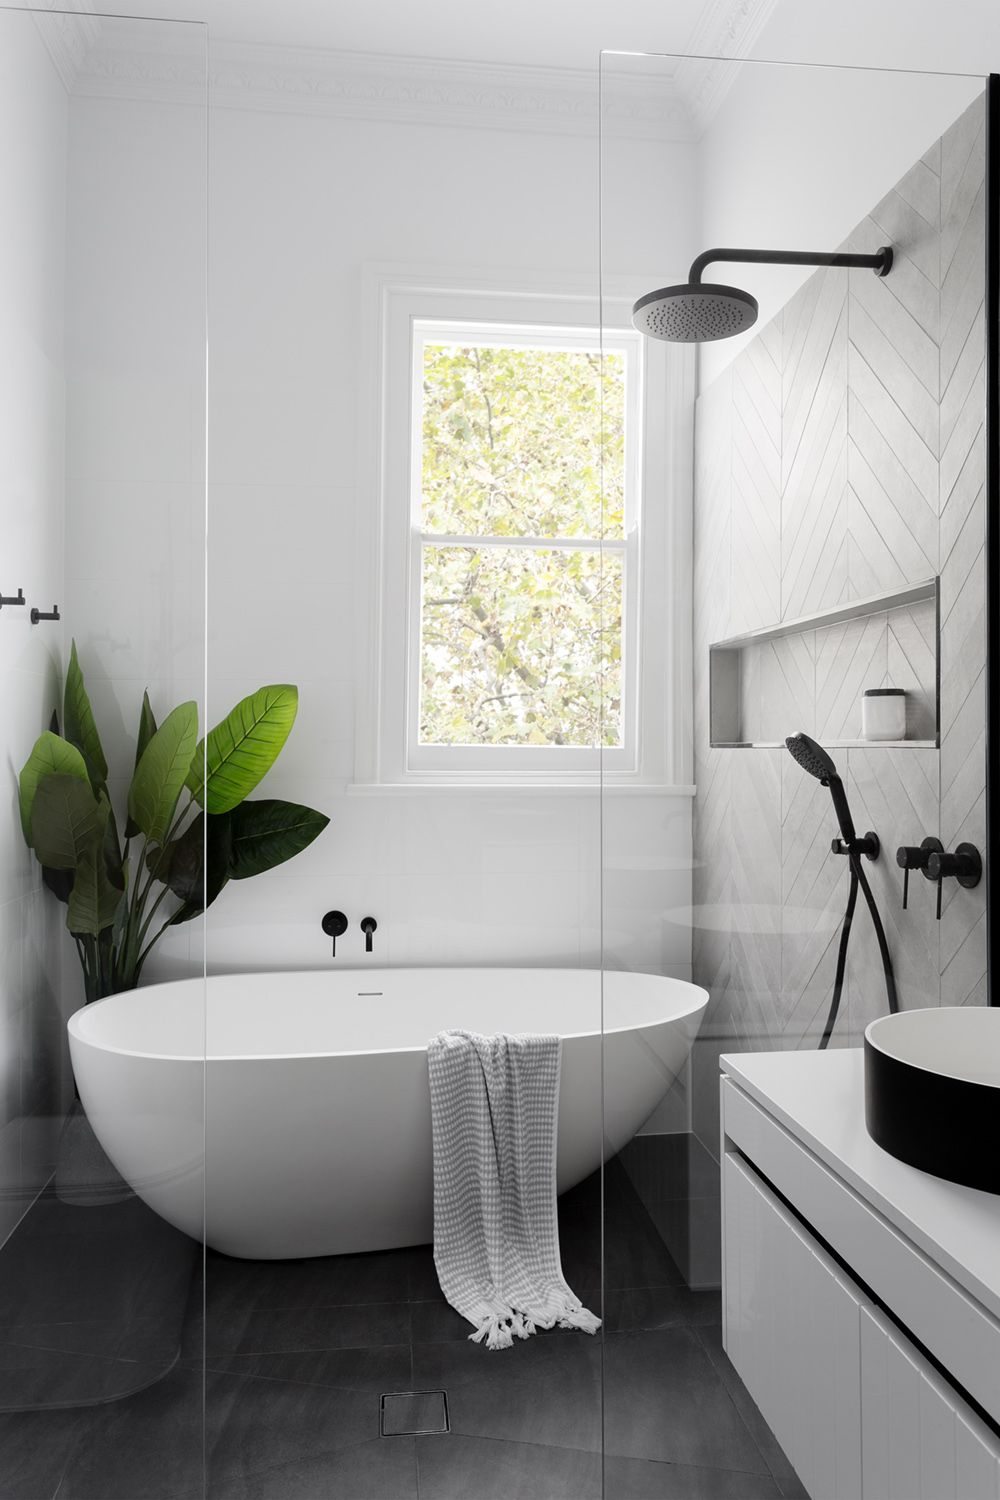 Minimal bathroom design | white bathroom with indoor plant, natural ...